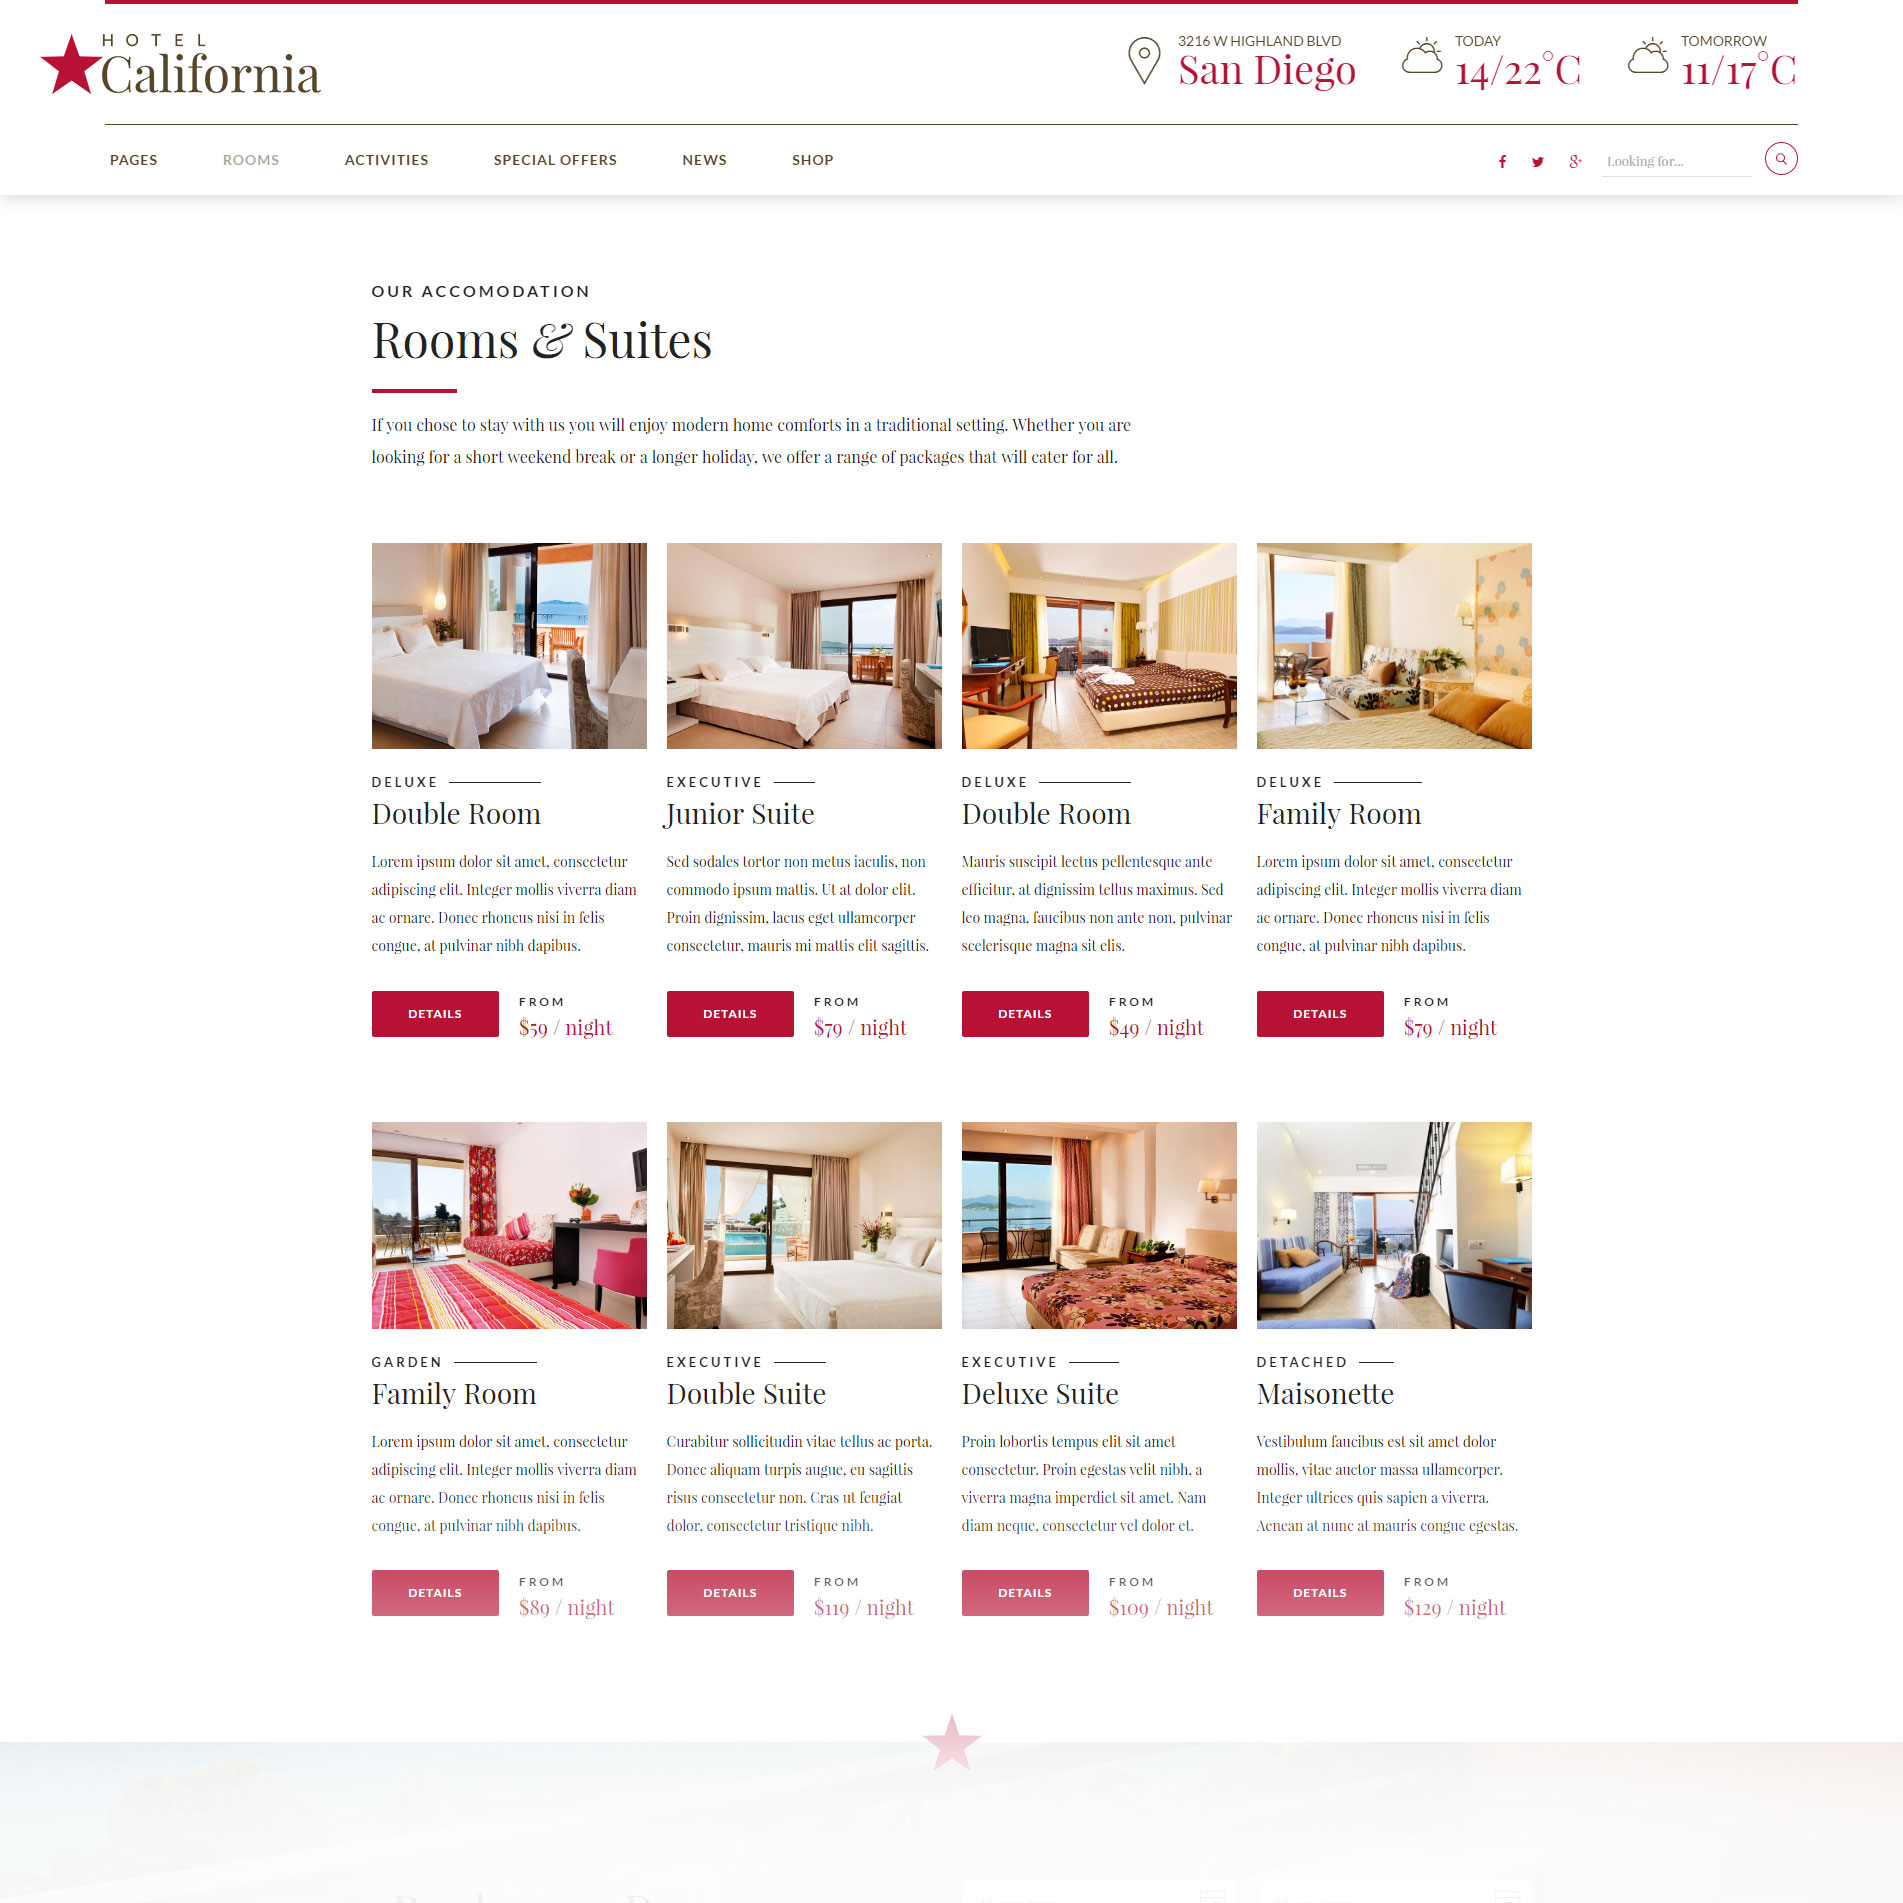 http://hotel.bold-themes.com/wp-content/uploads/2016/03/screenshot-02.jpg